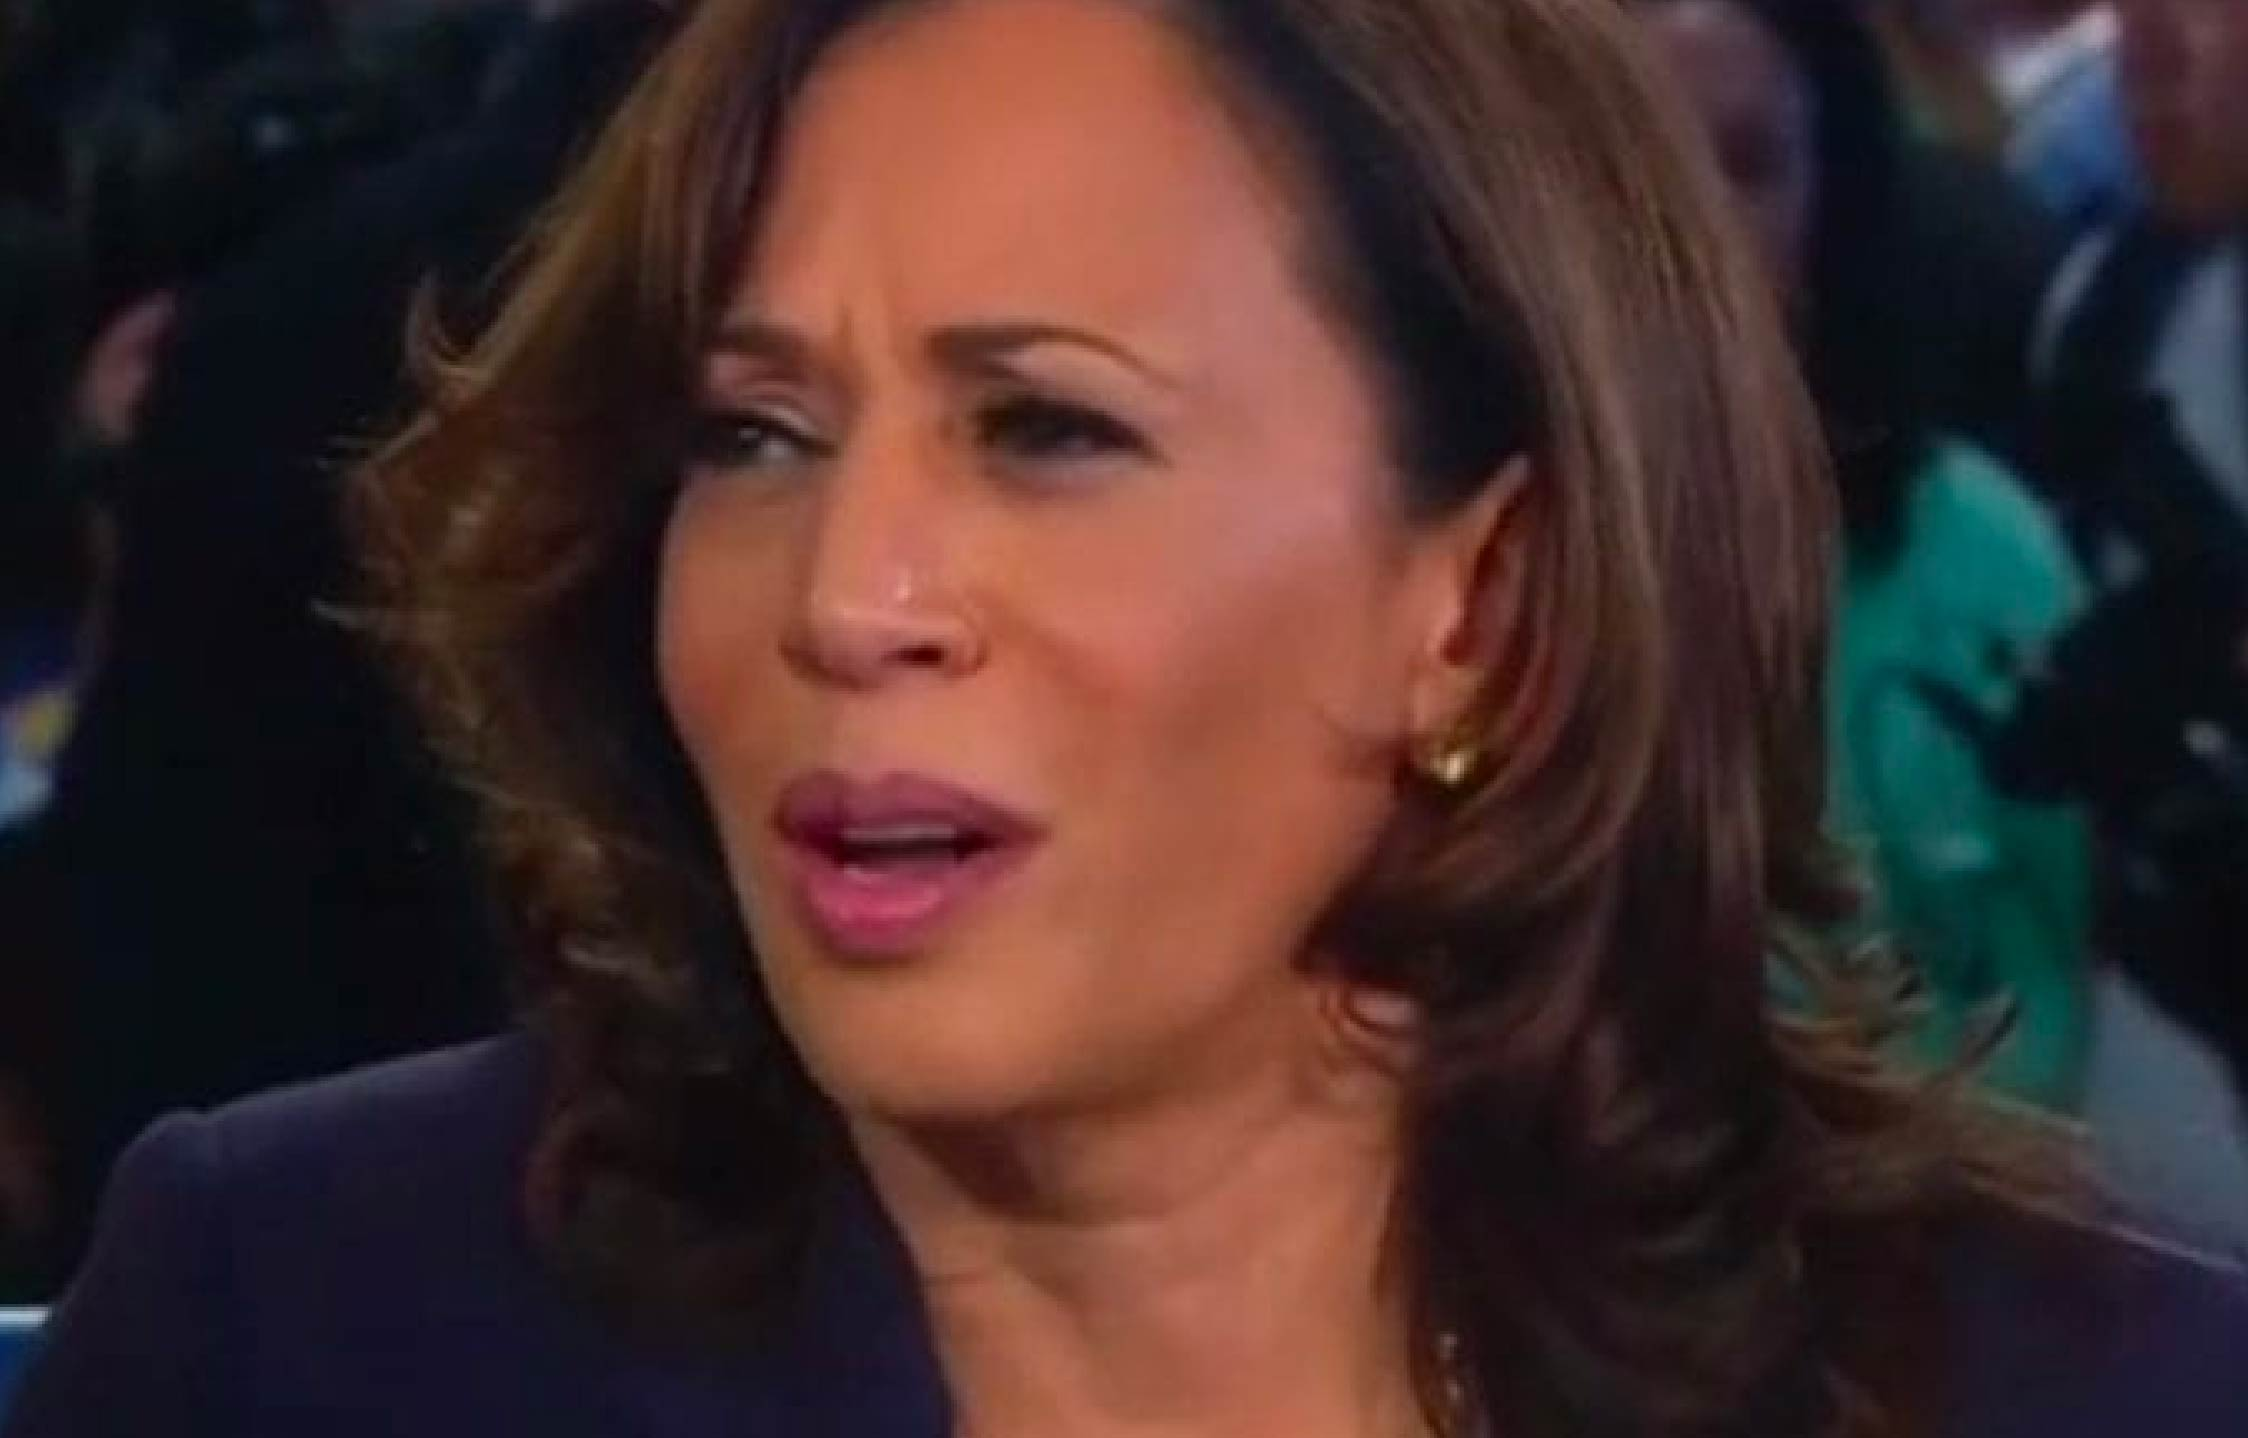 After This New Report, Kamala Might Be Feeling Like Her WH Dreams Are Slipping Away